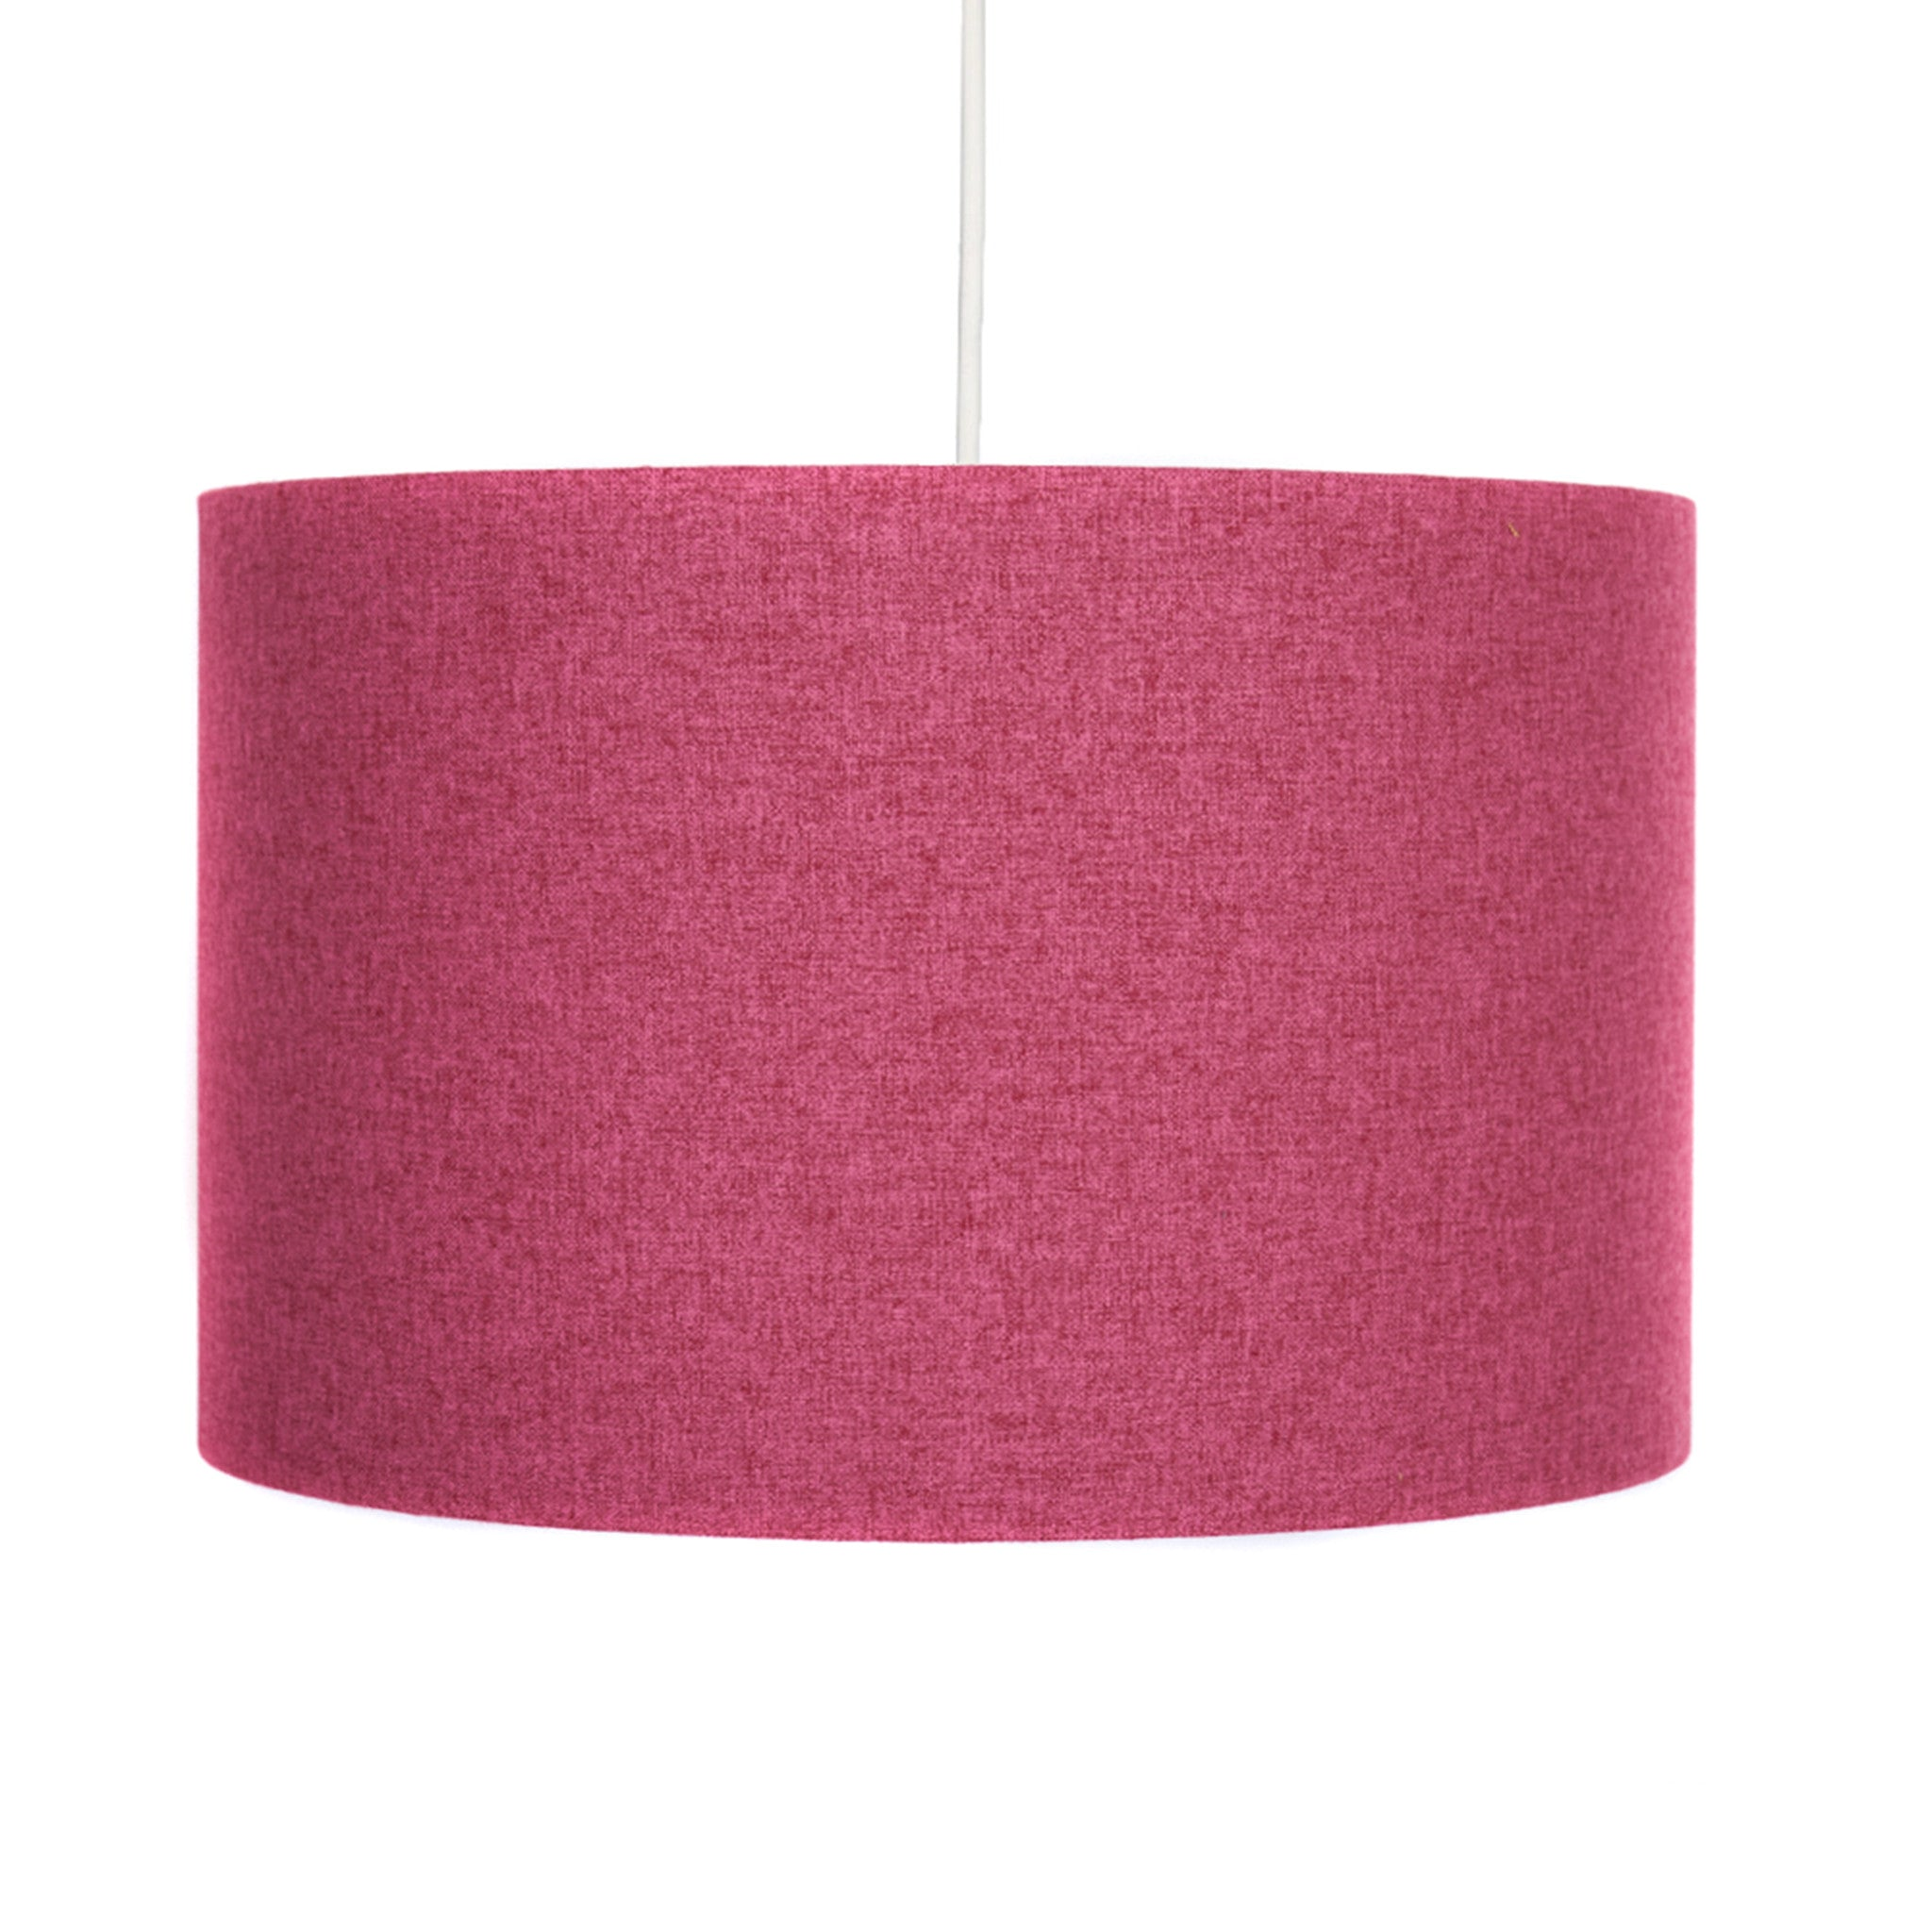 Fuchsia pink handmade contemporary drum lamp shade hunkydory home fuschia pink lampshade mozeypictures Gallery